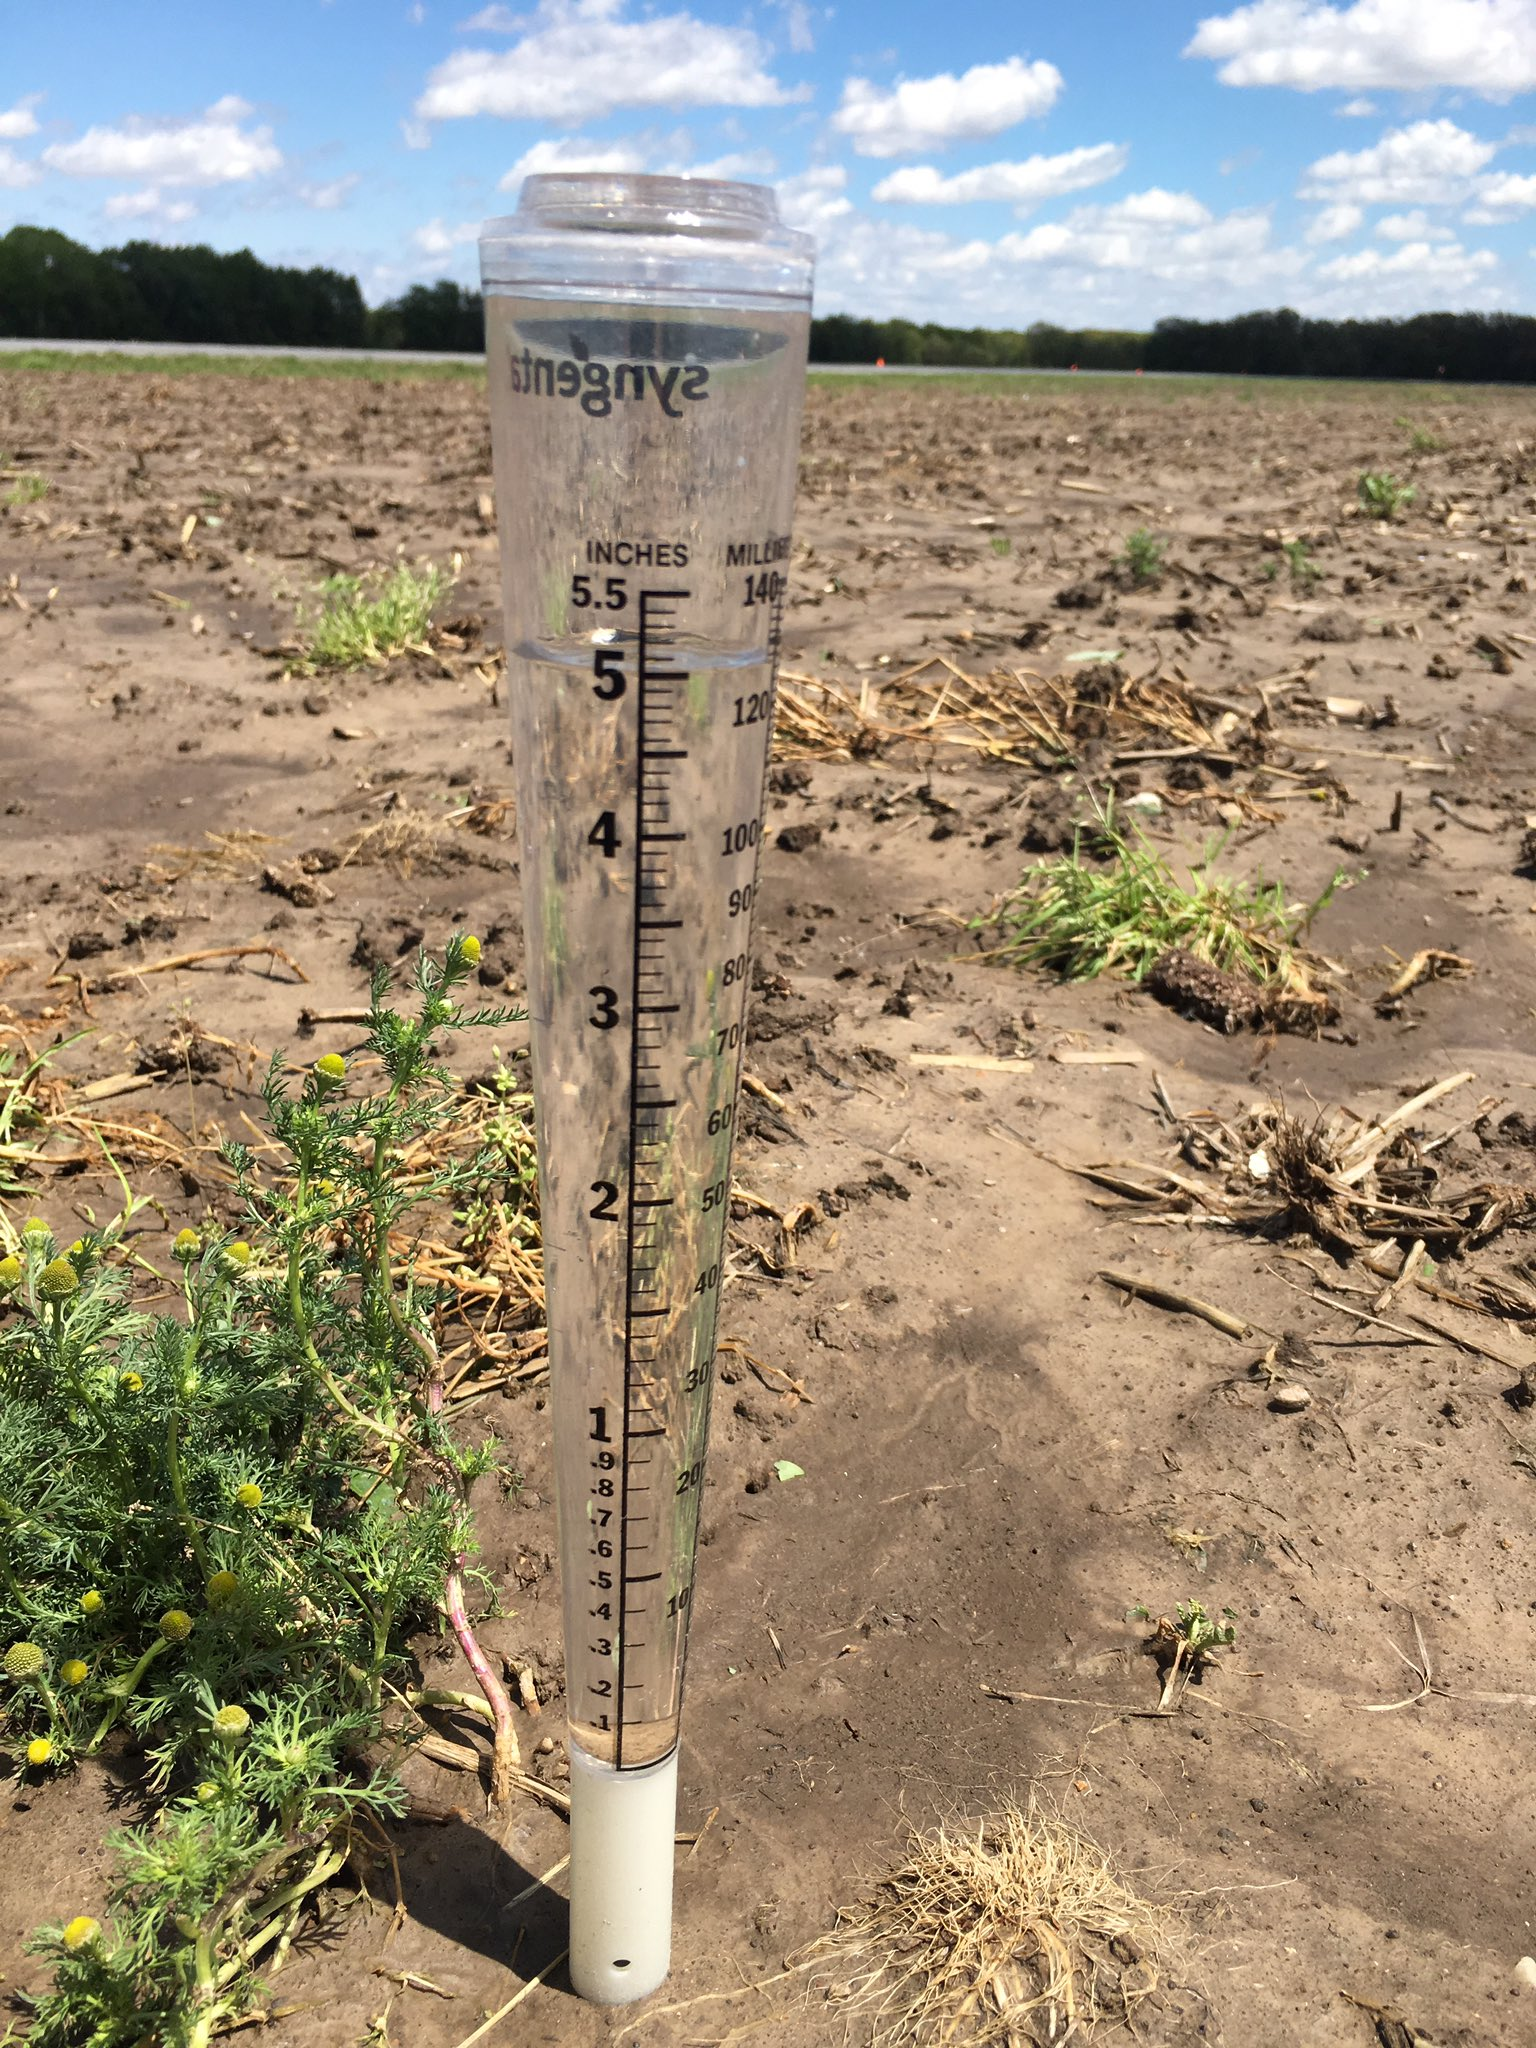 """This agronomic image shows a rain gauge with just over 5"""" of rainfall from April 26 through May 2, 2017"""